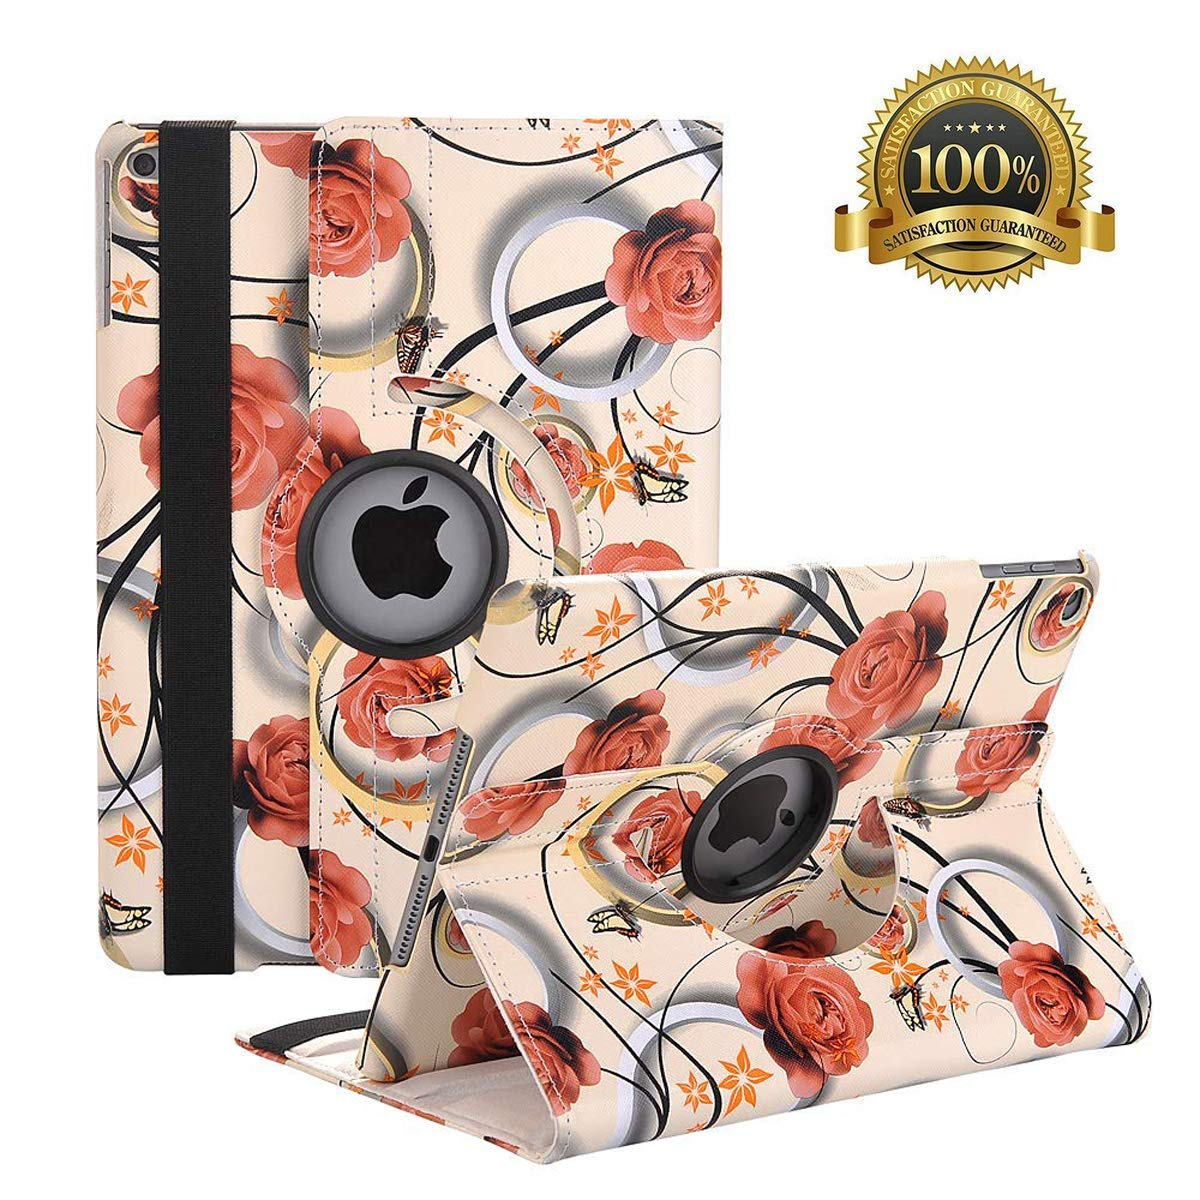 """Hsxfl New iPad 9.7 inch 2018 2017/ iPad Air Case - 360 Degree Rotating Stand Smart Cover Case with Auto Sleep Wake for Apple iPad 9.7"""" (6th Gen, 5th Gen)/iPad Air (Coffee Rose)"""